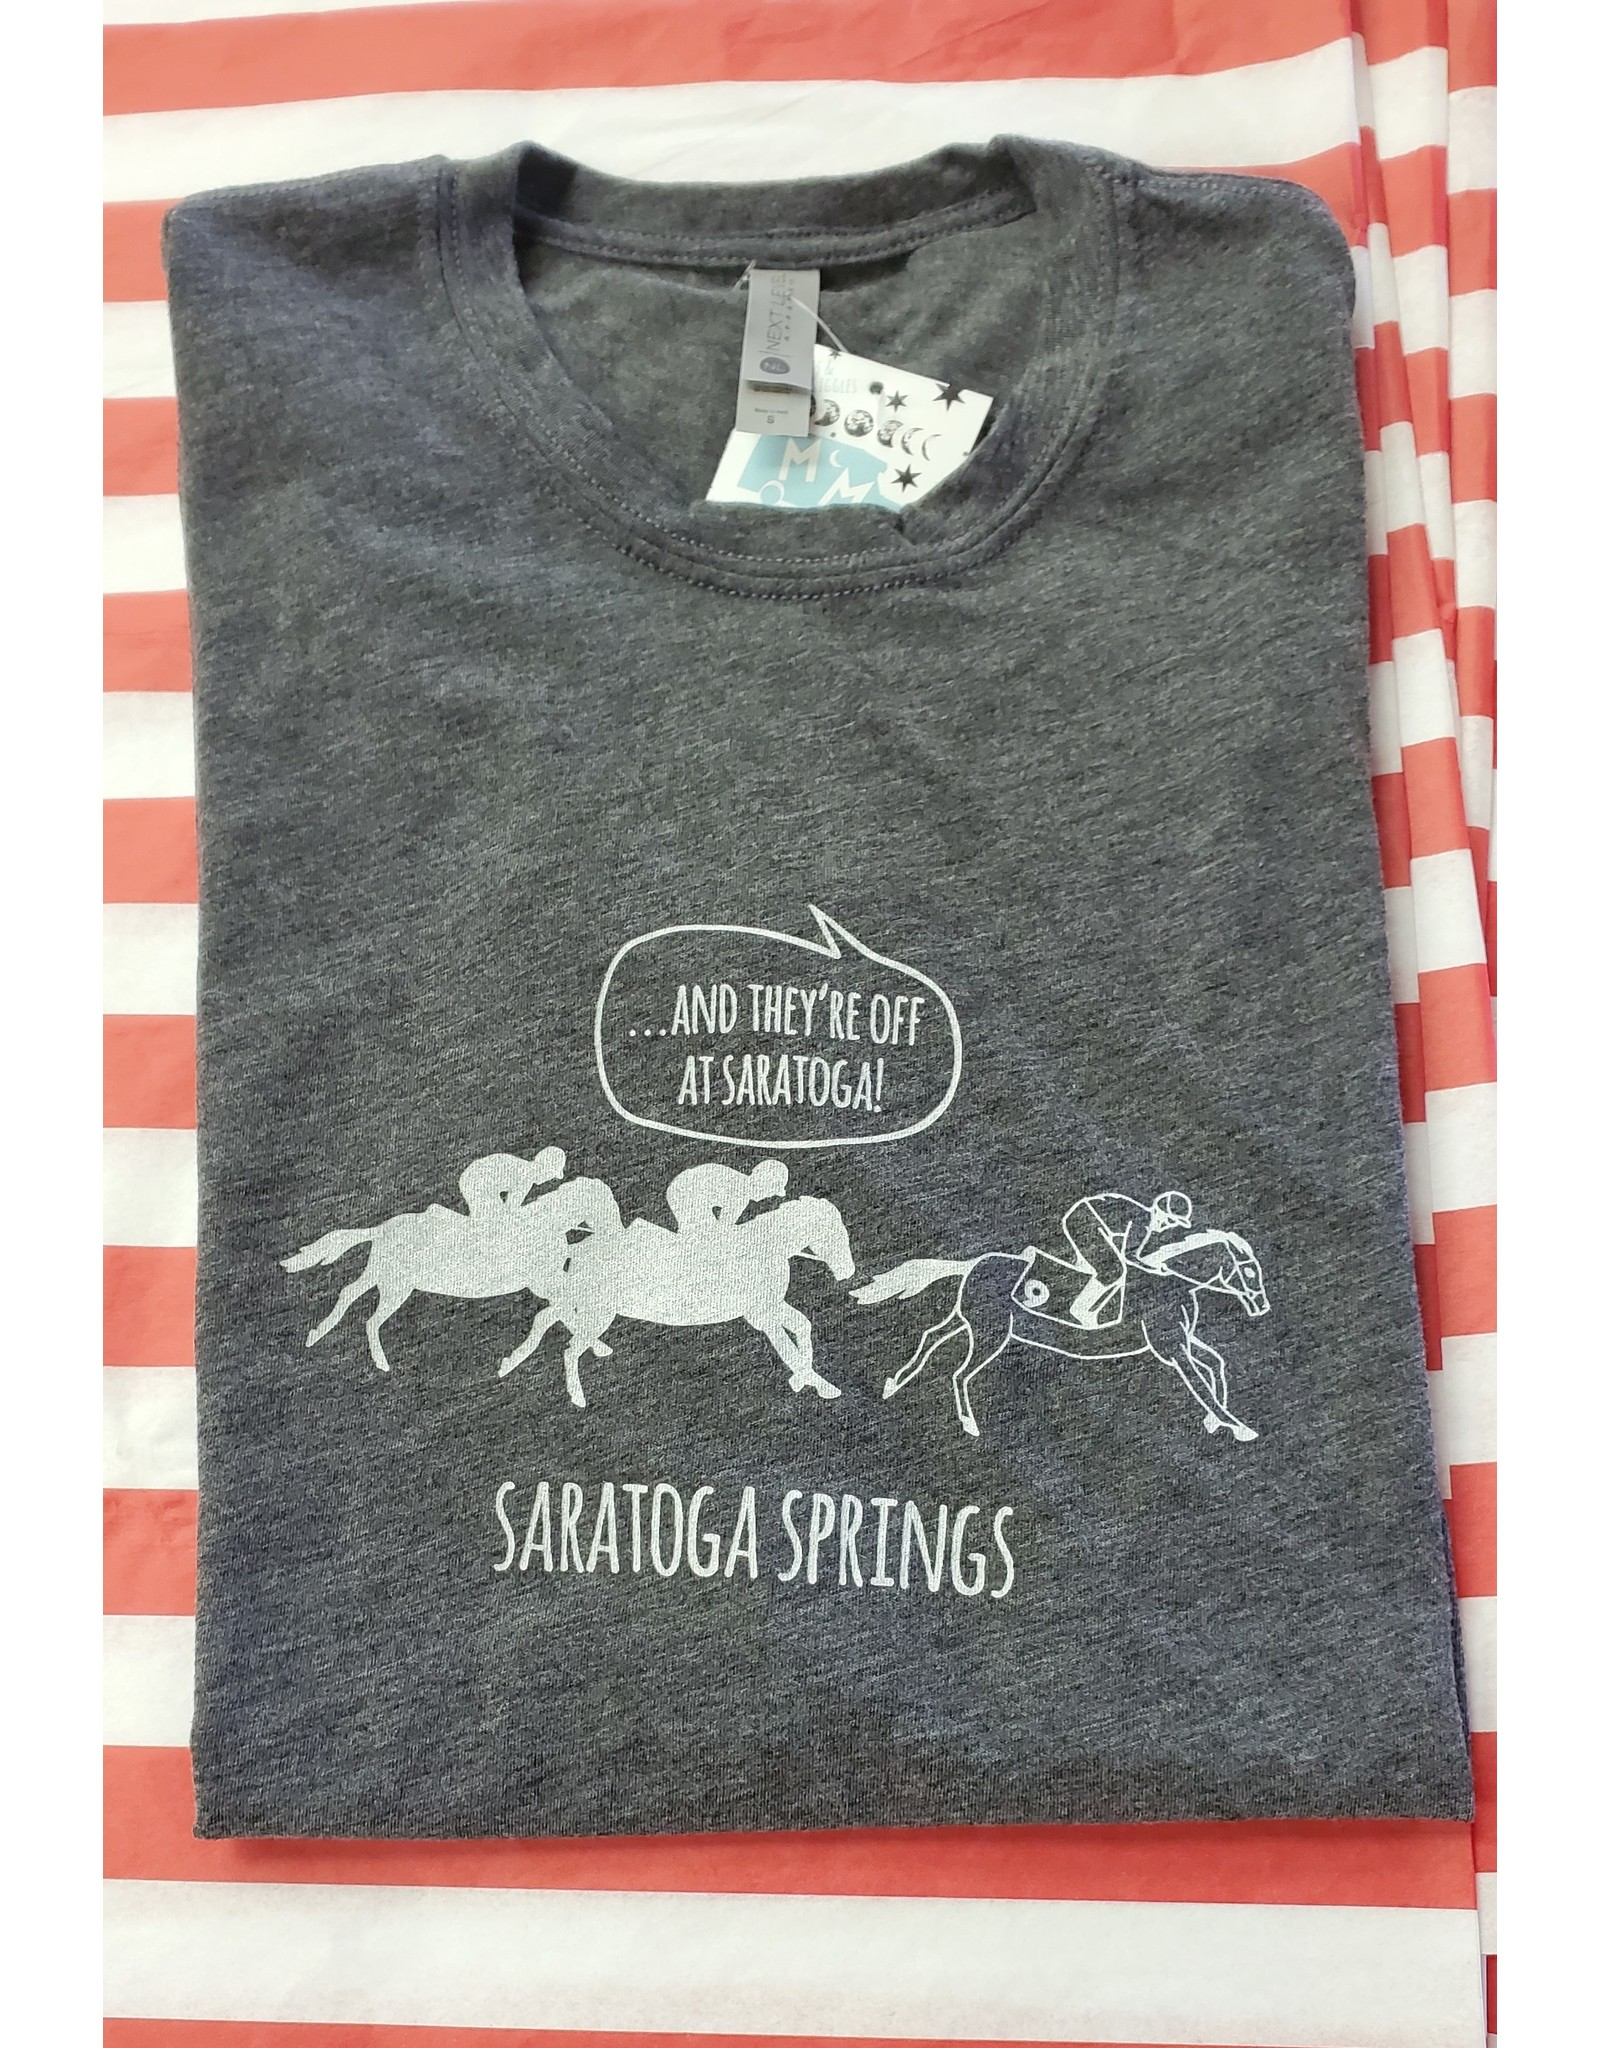 Tailgate and Party Original Tee Shirt - And They're Off in Saratoga